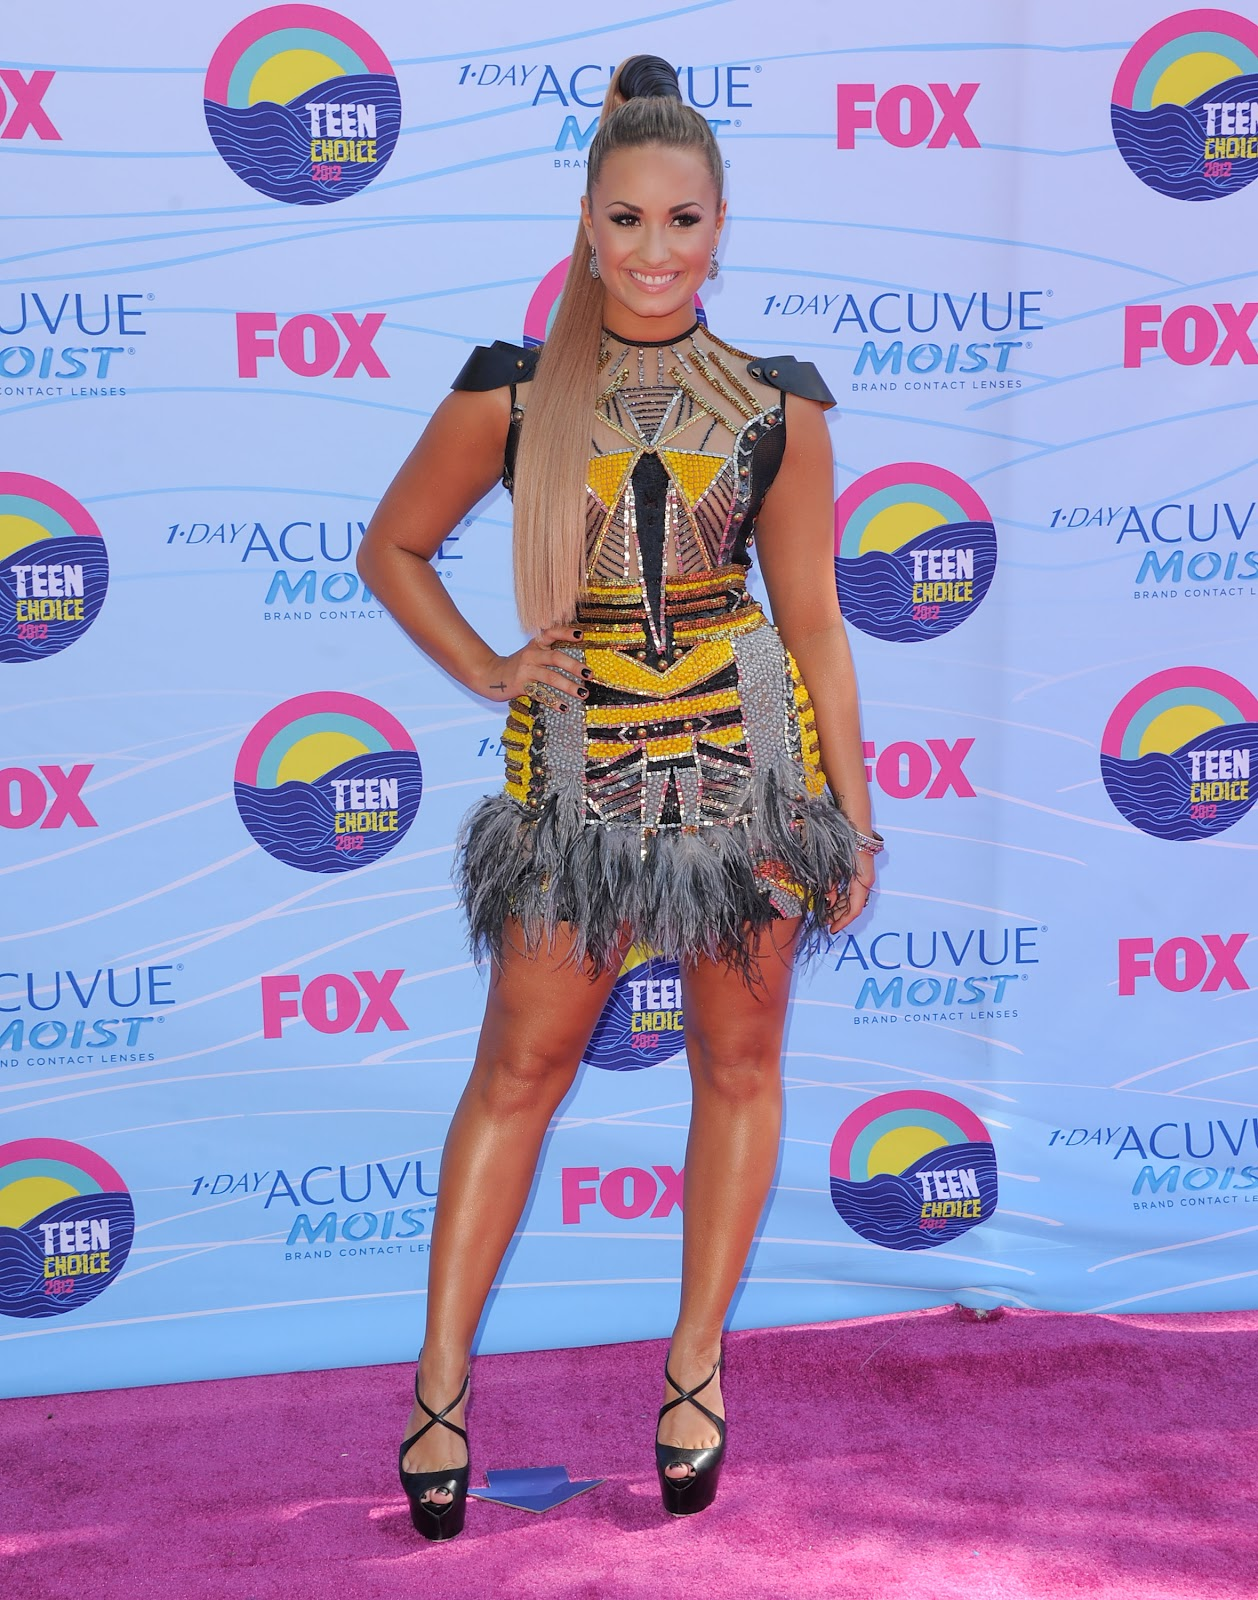 http://1.bp.blogspot.com/-2I6t6cCa3d8/UA0HiUKhFiI/AAAAAAAAPIk/Rt8syOcalXg/s1600/Demi+Lovato+See+Through+to+Sideboob+&+Leggy+at+the+Teen+Choice+Awards+in+LA+-+July+22,+2012+09.jpg